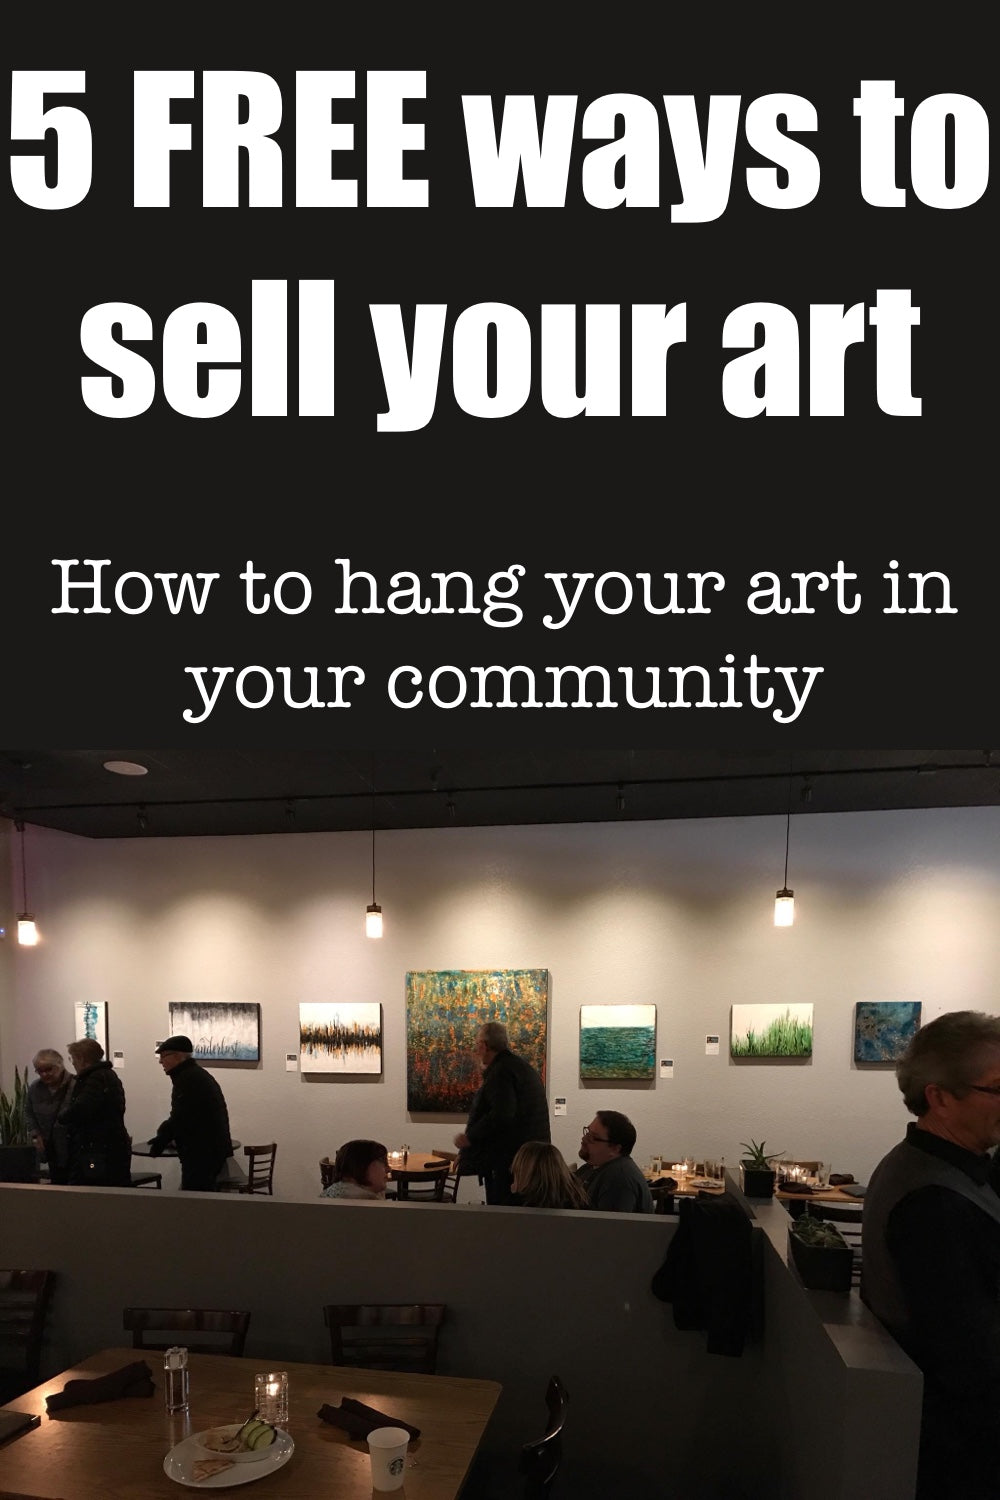 5 FREE ways to get your art hung up in your community to start SELLING your art